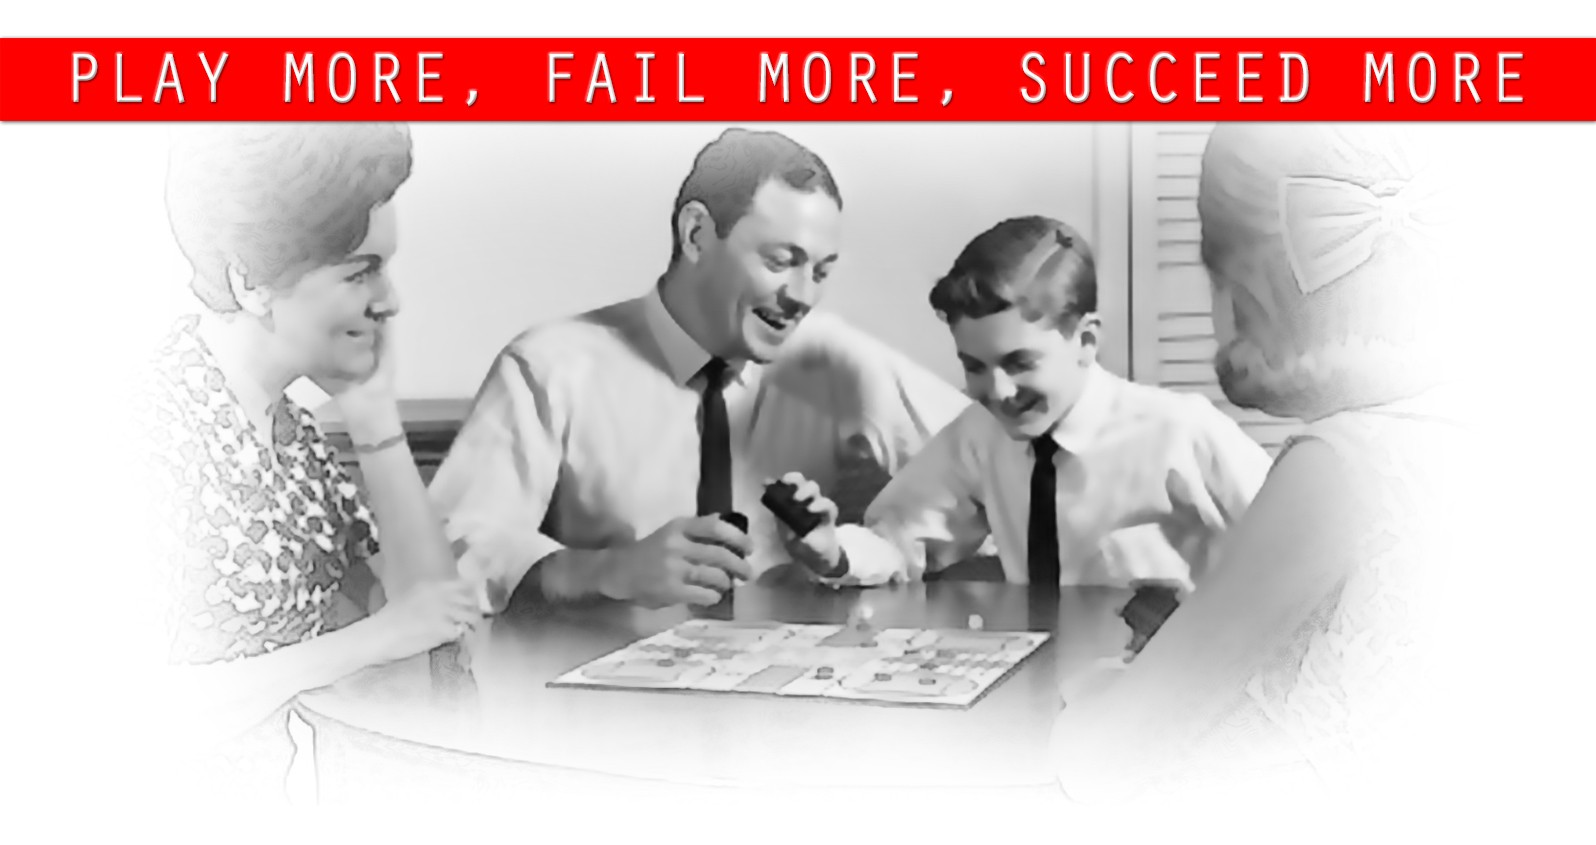 Play More, Fail More, Succeed More